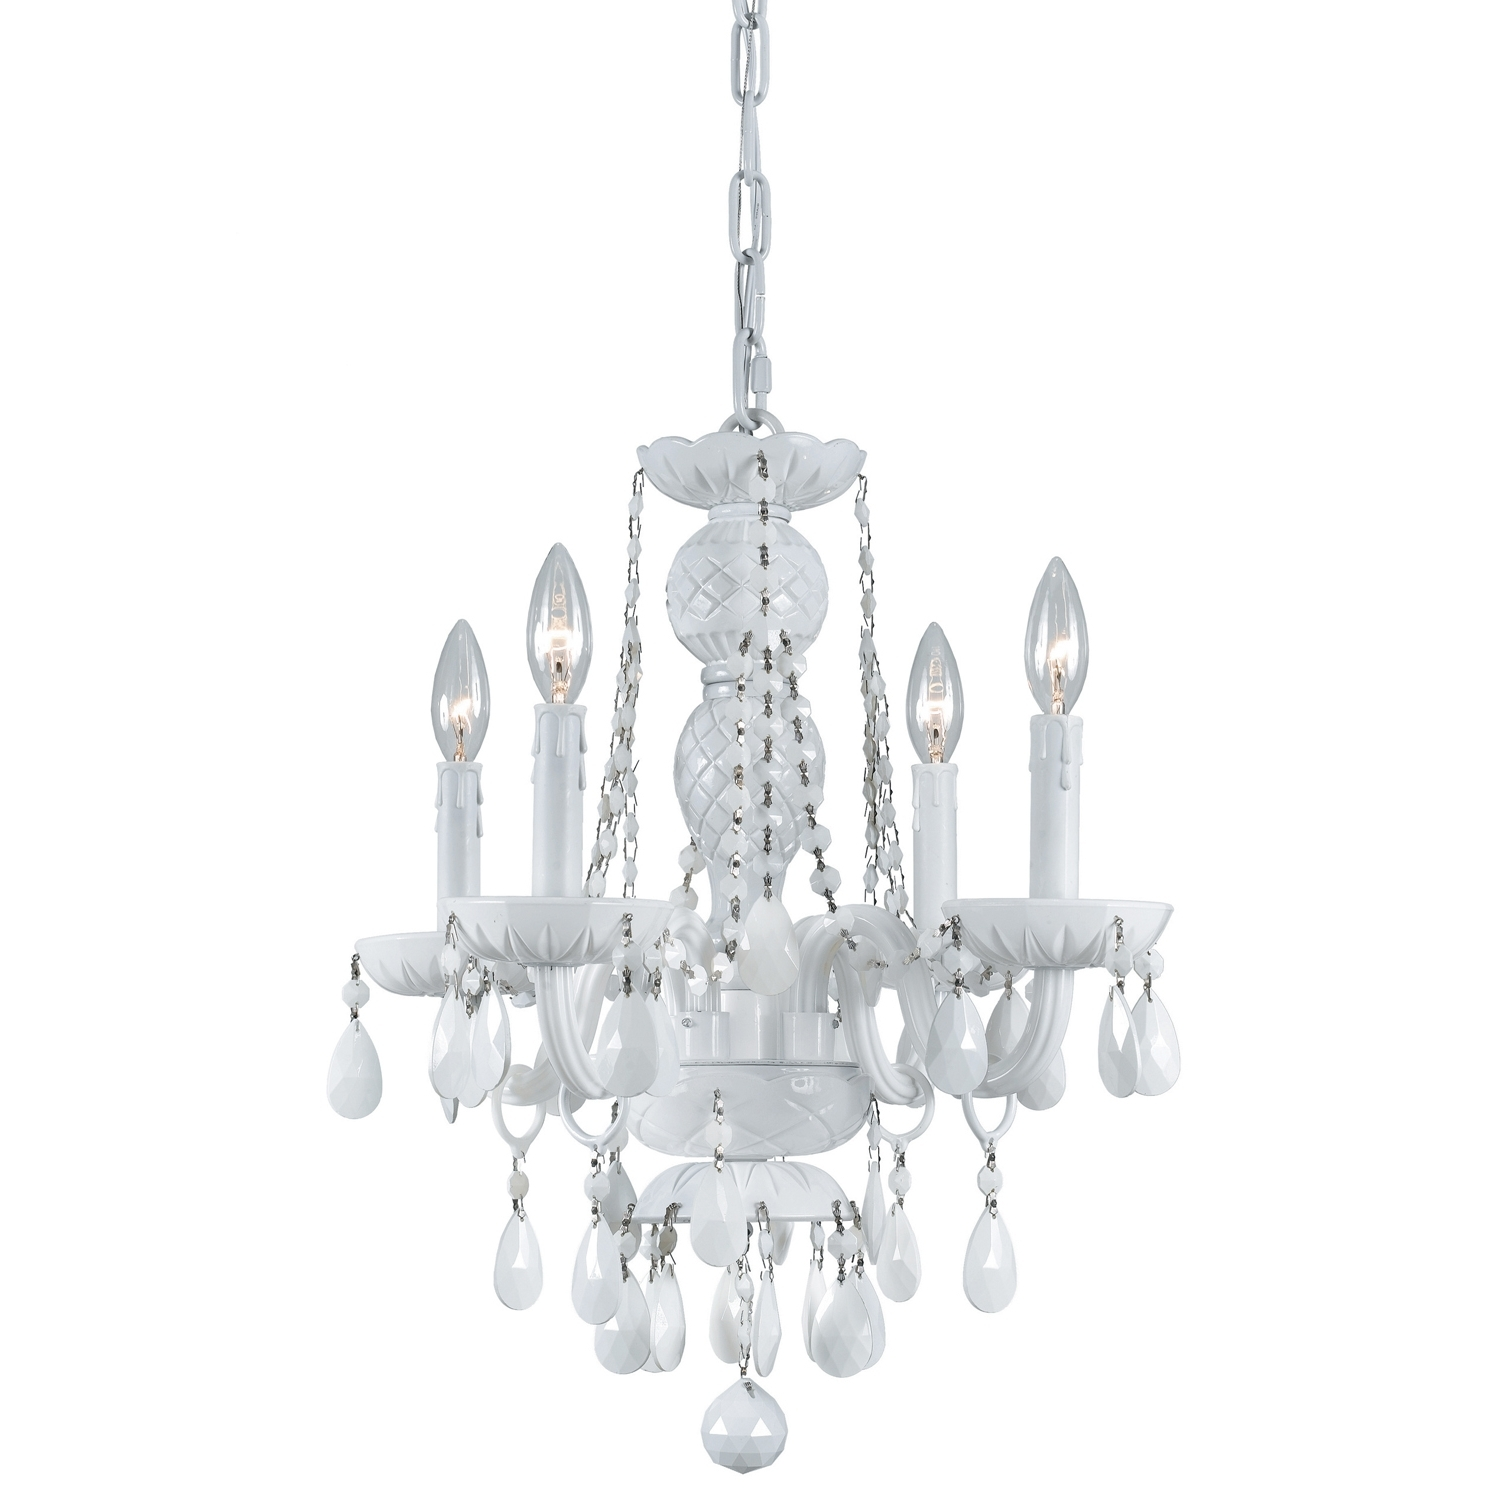 Most Current Mini Chandeliers For Bedroom – Internetunblock – Internetunblock Within Small White Chandeliers (View 11 of 15)